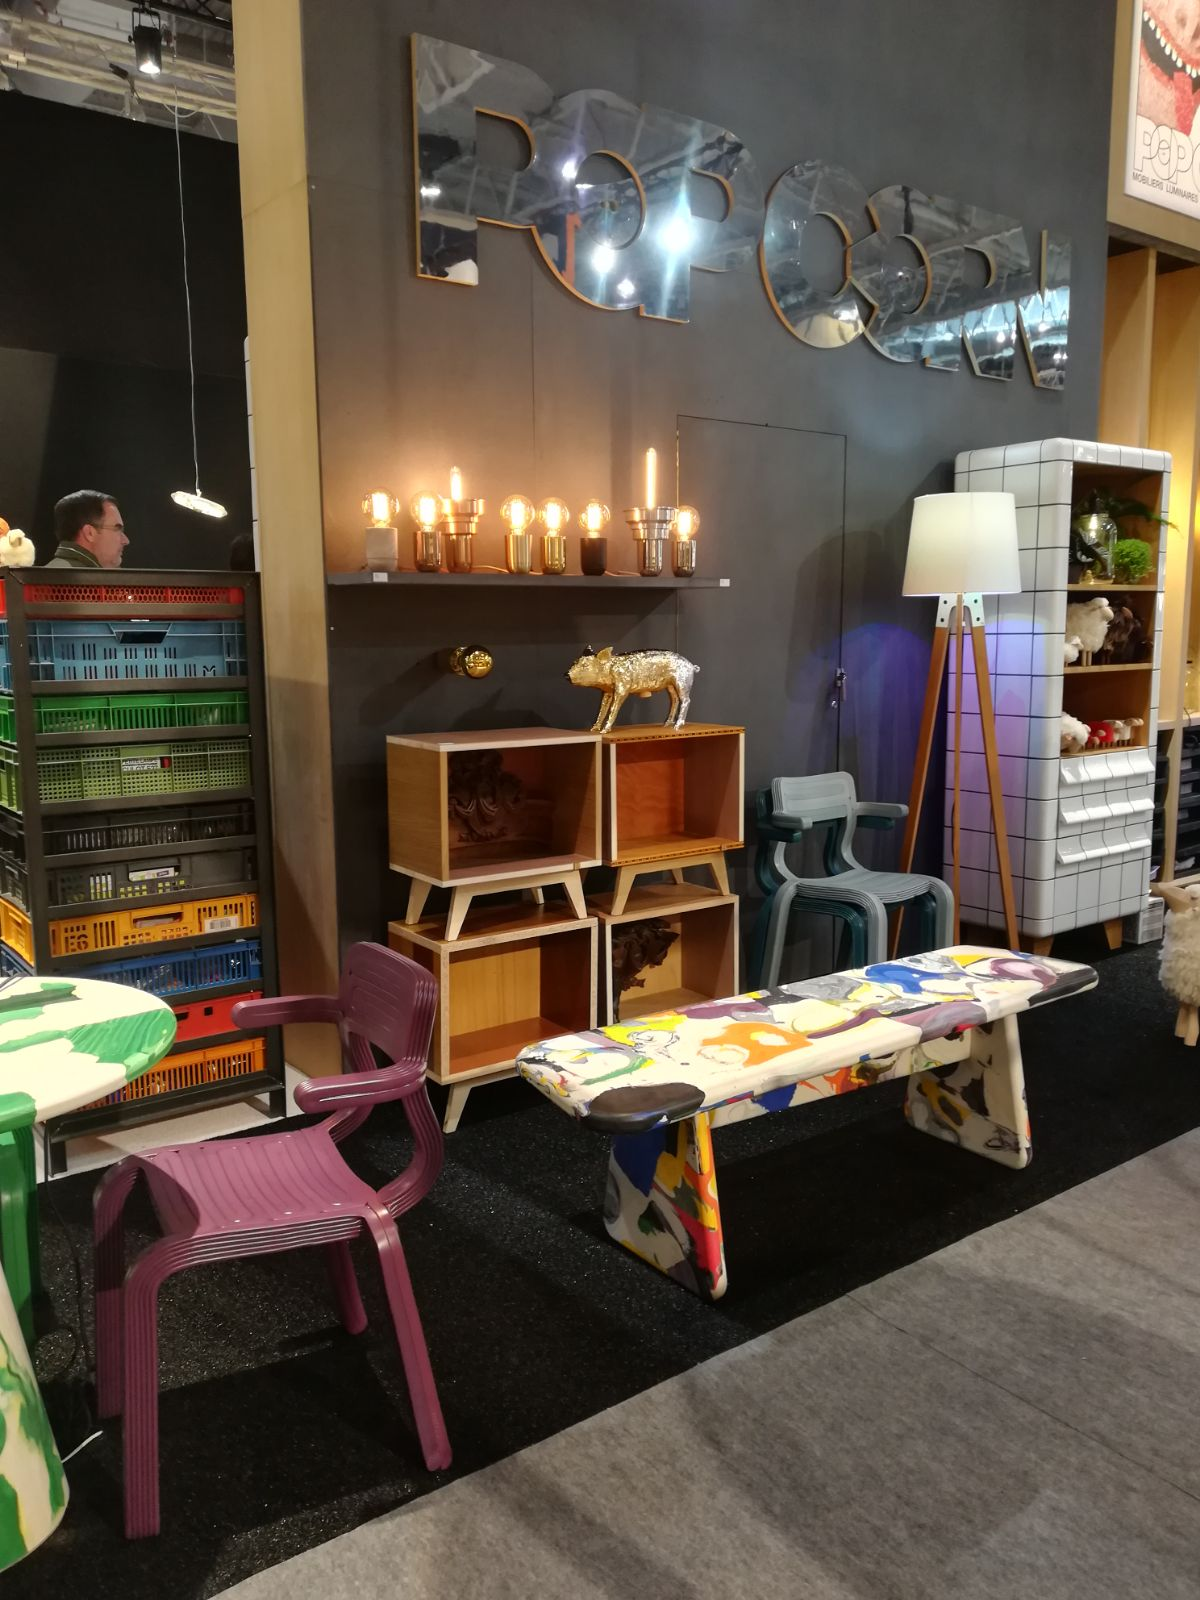 Let's Recap All The Best Moments from Maison et Objet 2017! (6) maison et objet 2017 Let's Recap All The Best Moments from Maison et Objet 2017! Lets Recap All The Best Moments from Maison et Objet 2017 6